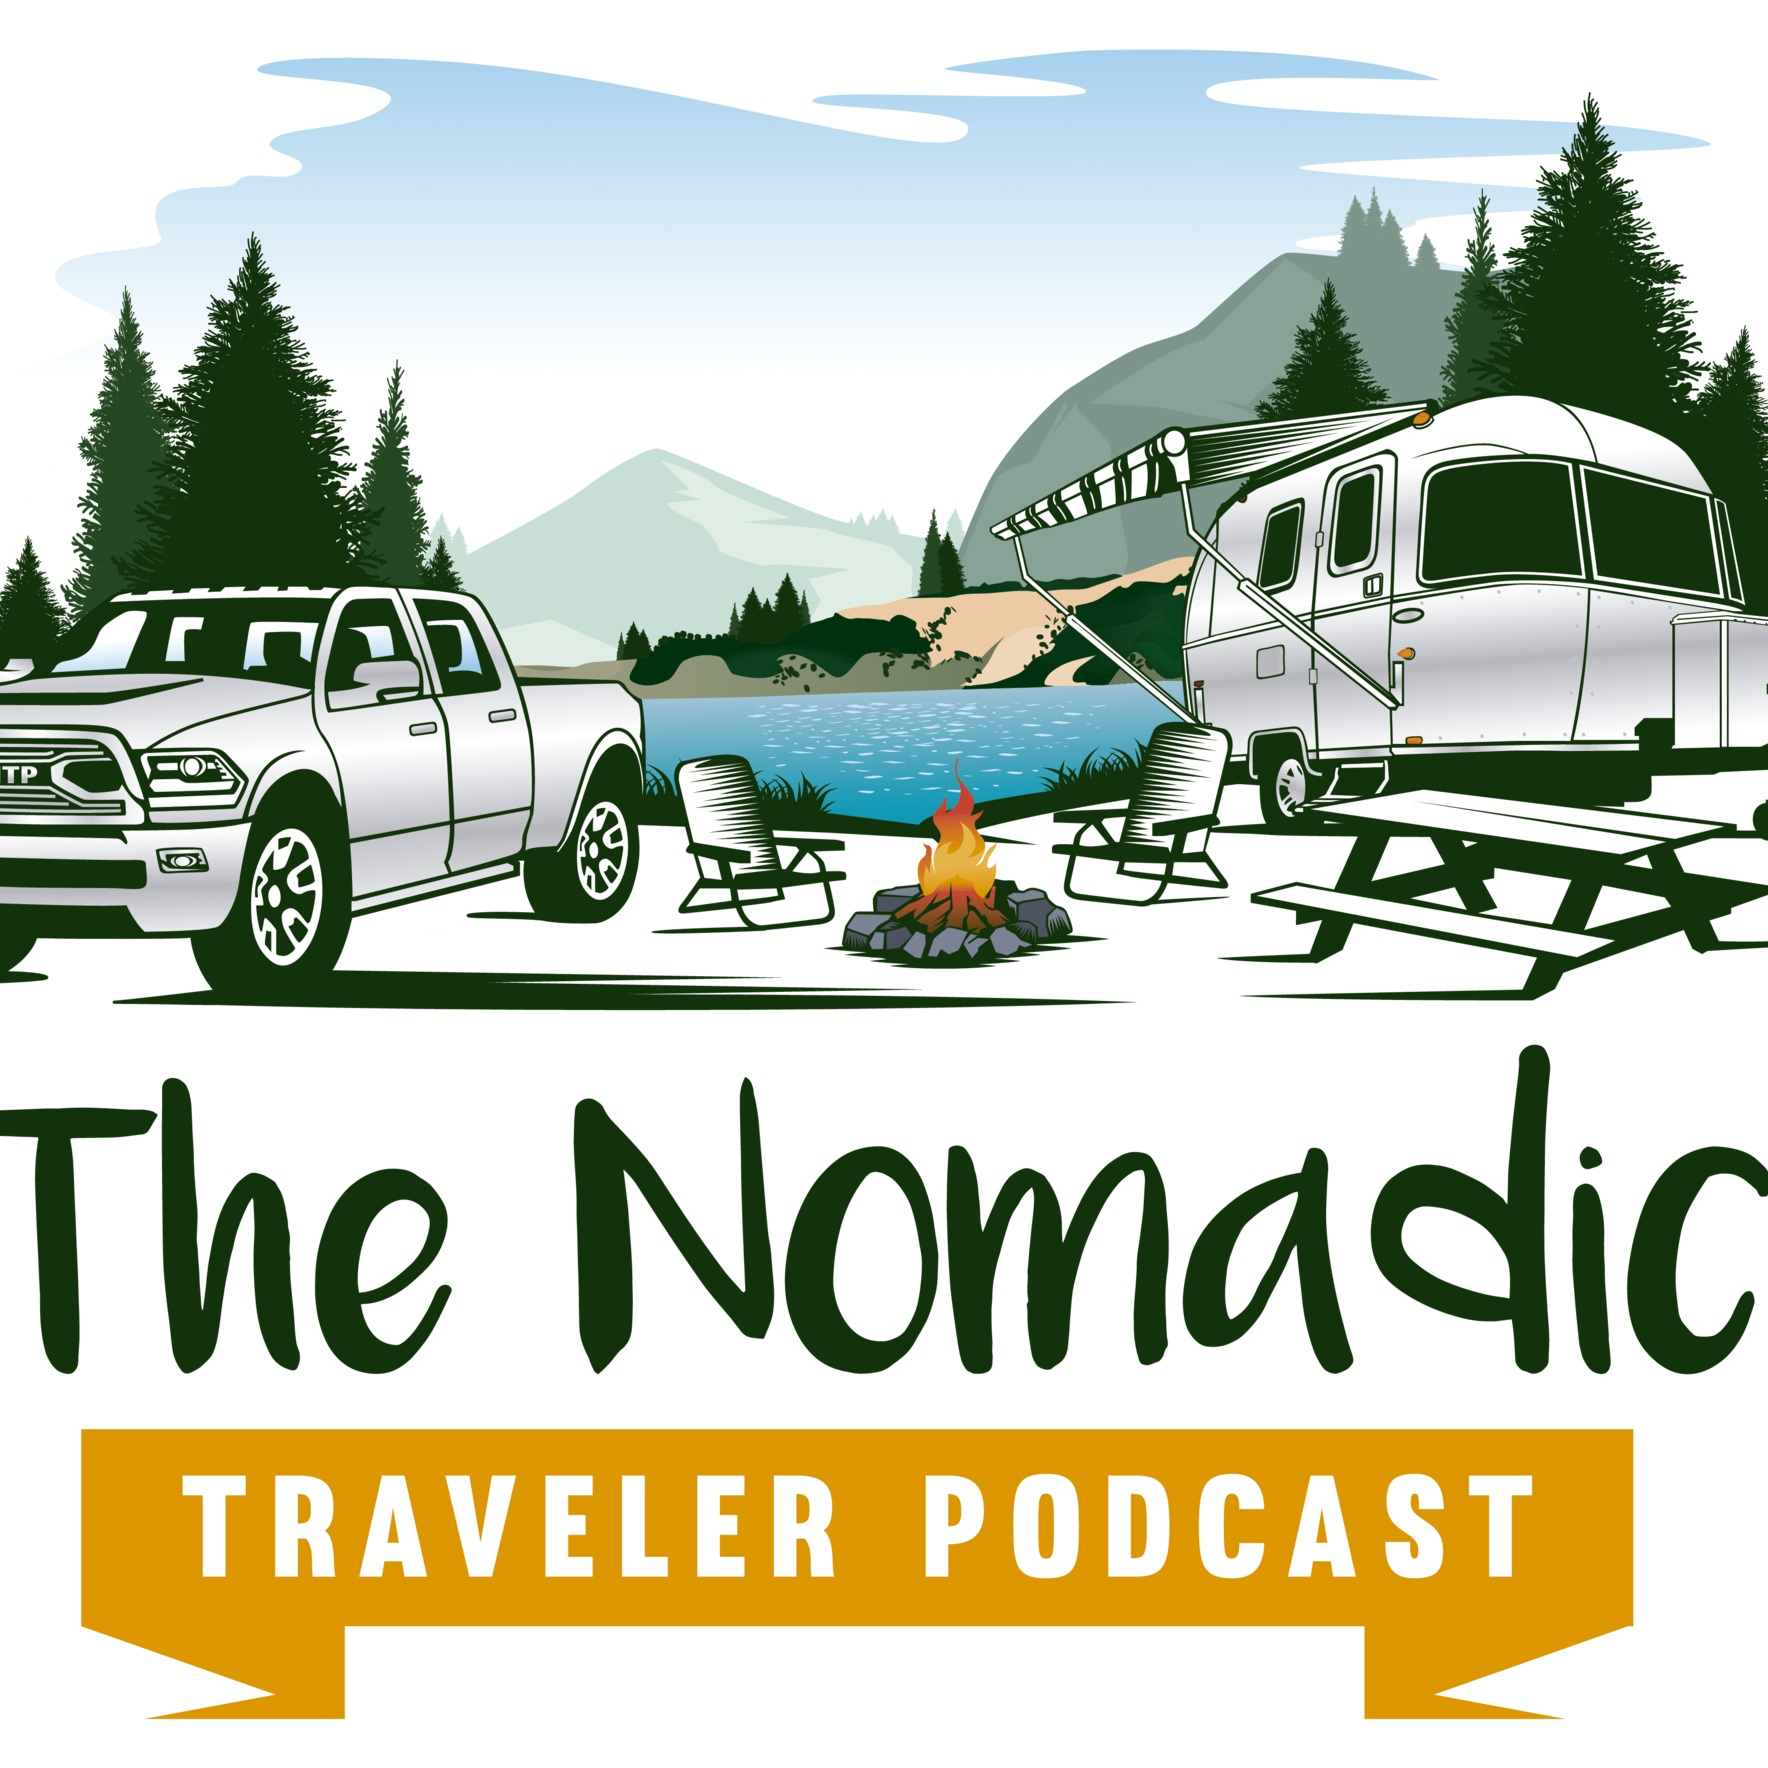 Listen to part two of my interview with Nicole and Jason. I had so much fun chatting with them, and hope you find inspiration to travel by yourself after listening!